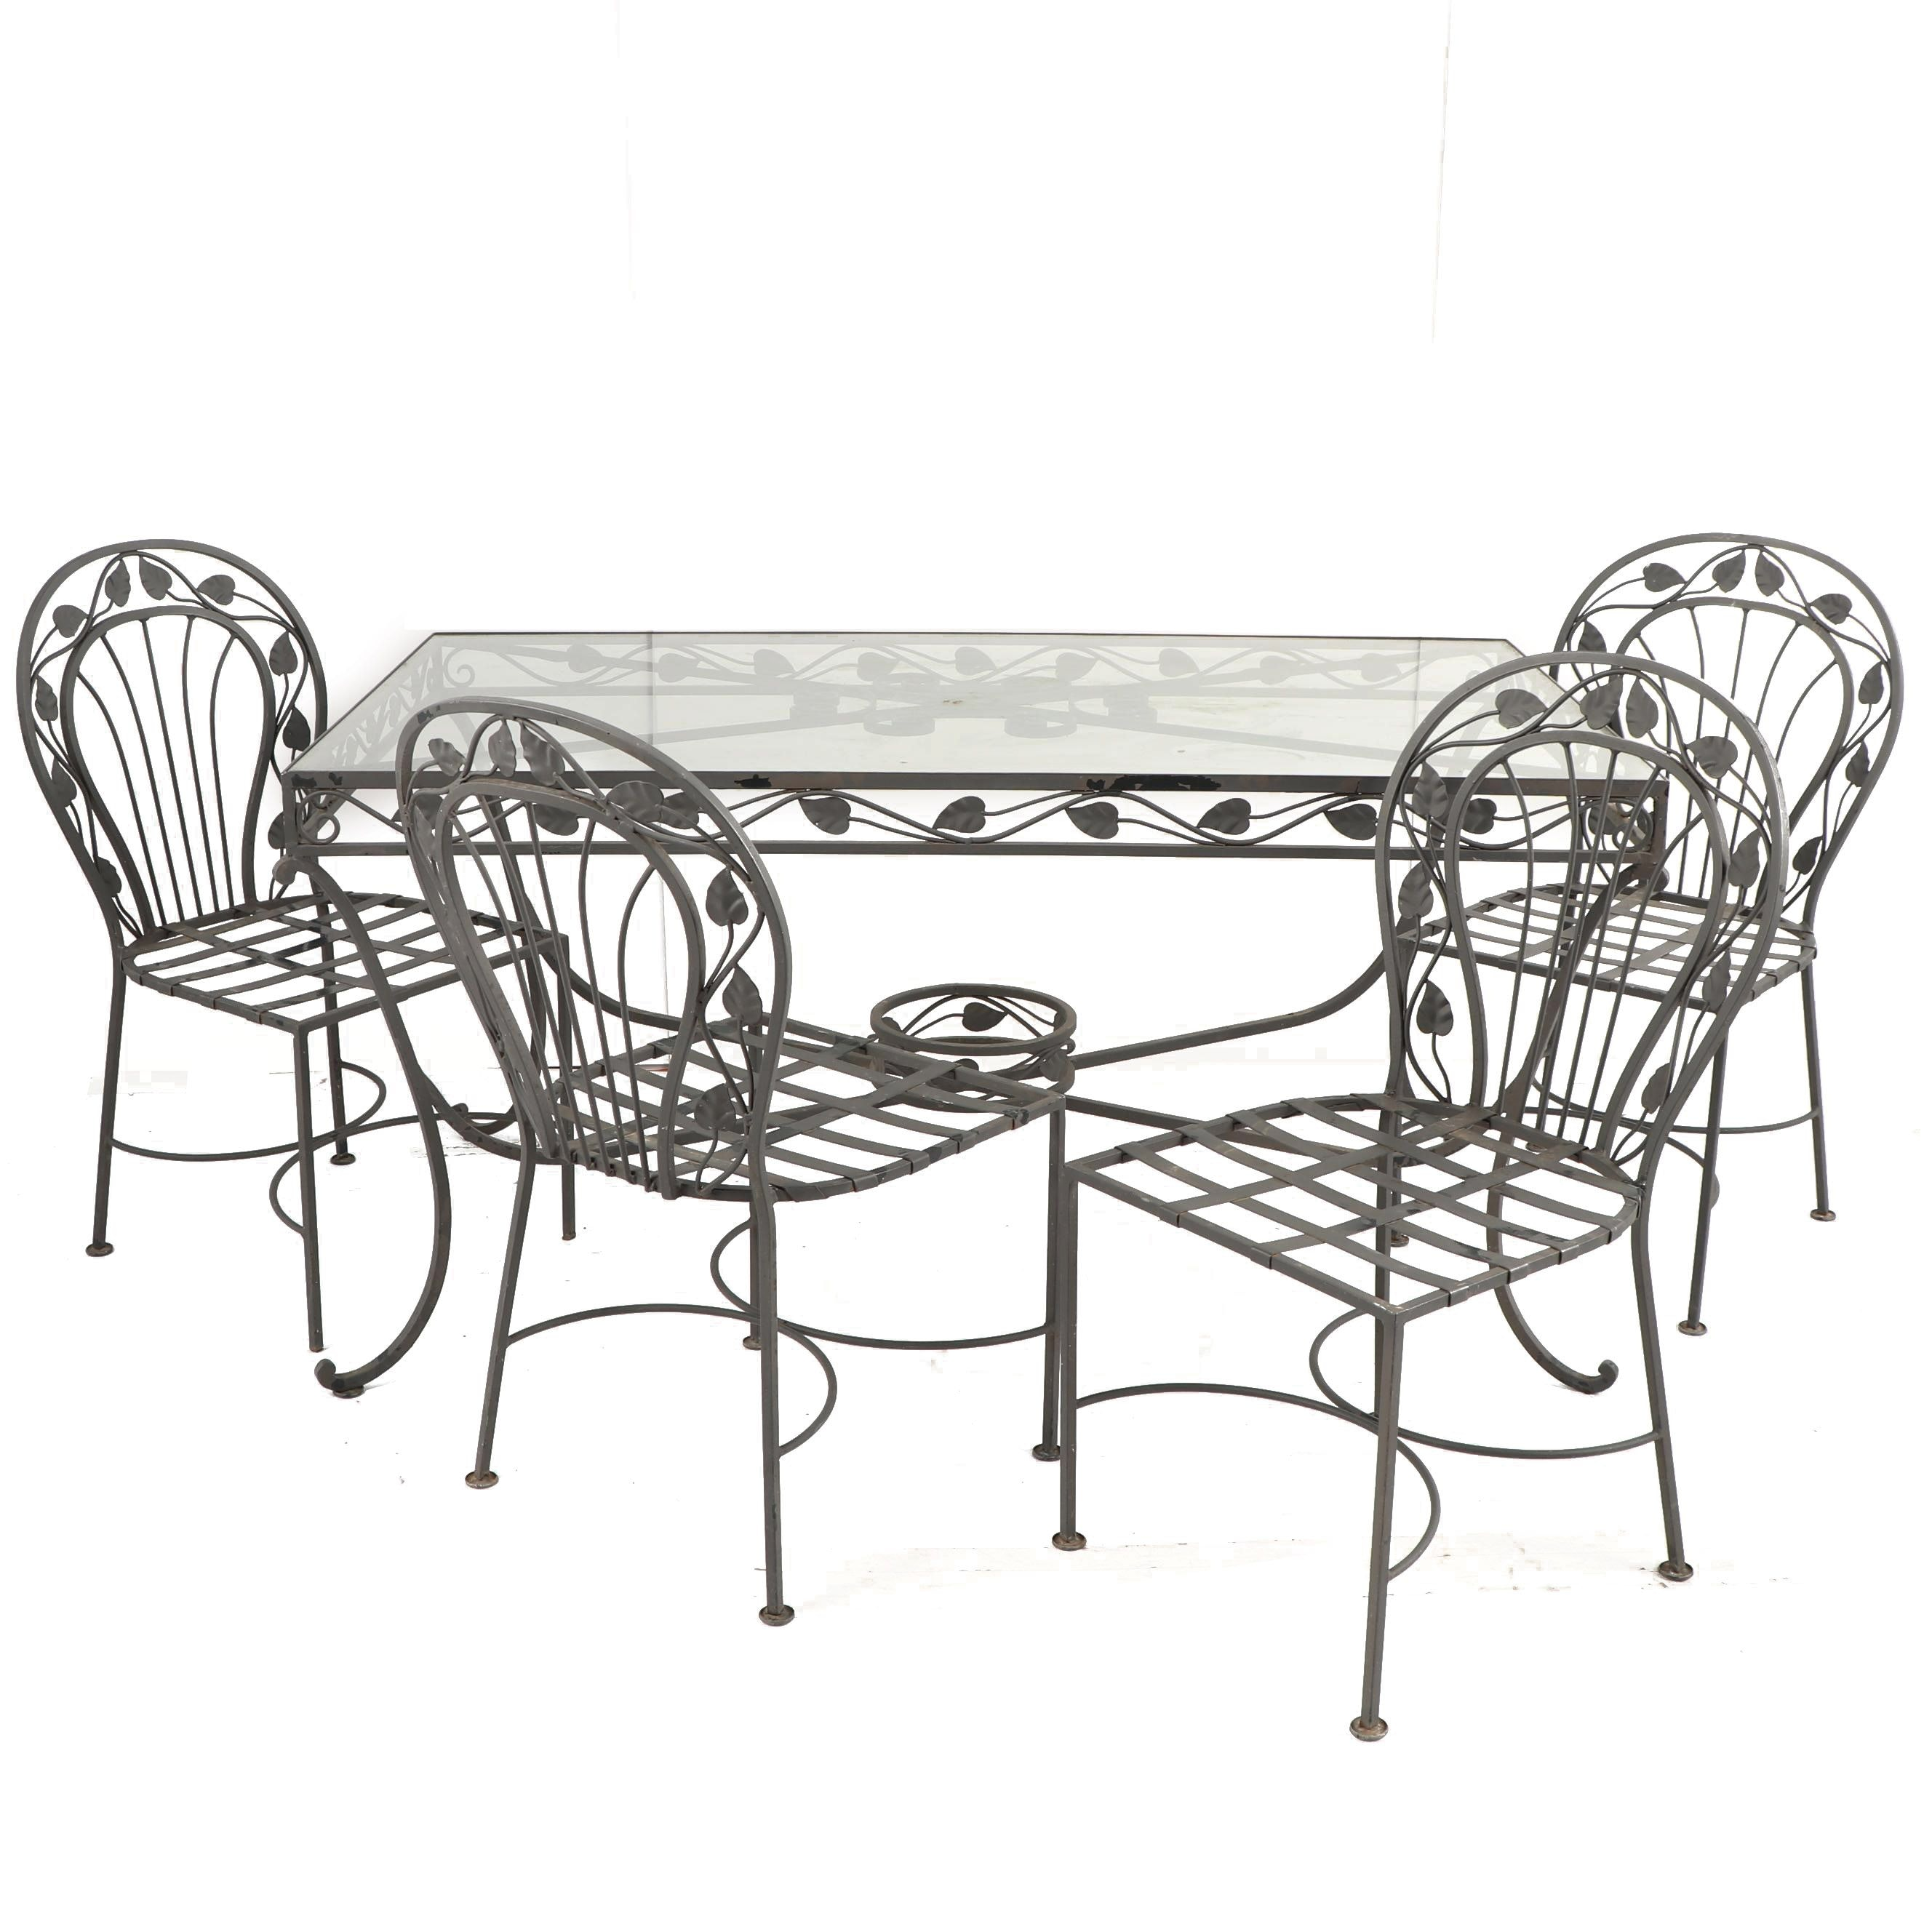 Oldcastle Glass Top Metal Patio Table with Chairs